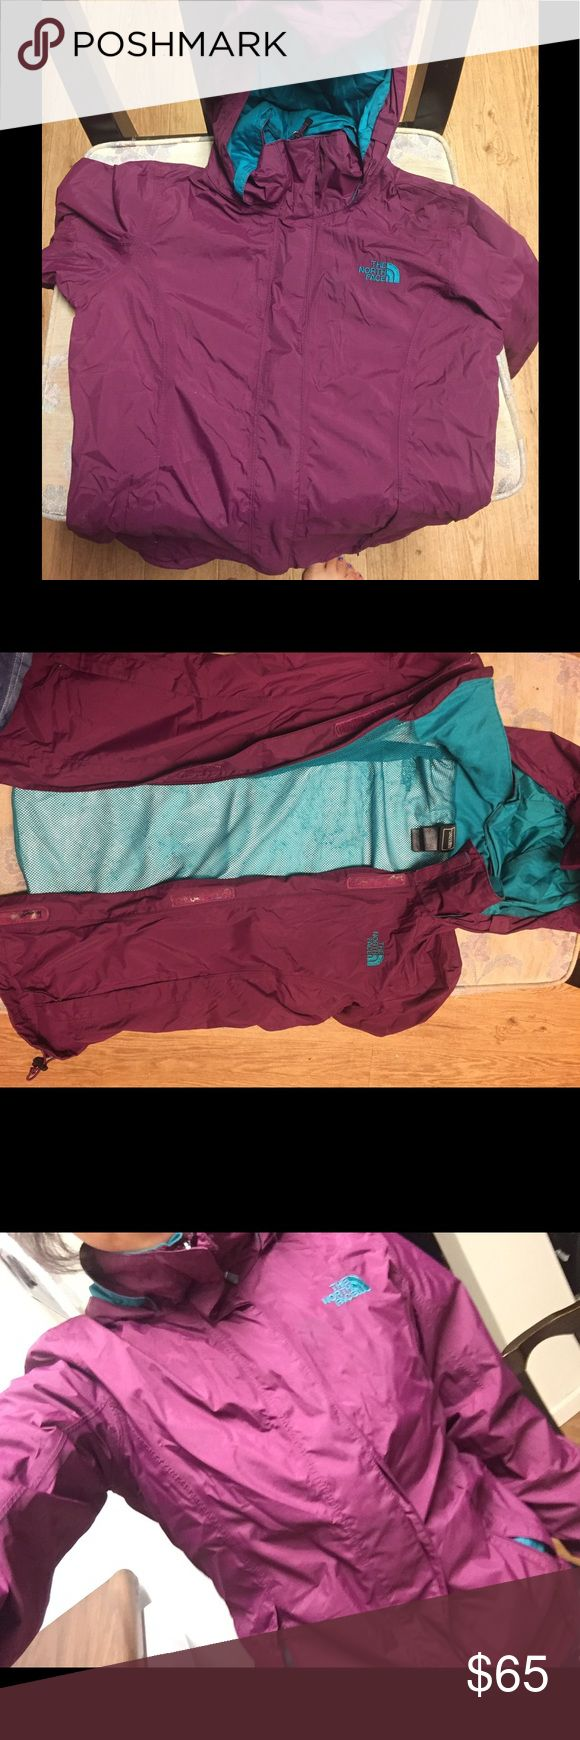 North face jacket Xs great condition looks brand new worn couple of times .. North Face Jackets & Coats